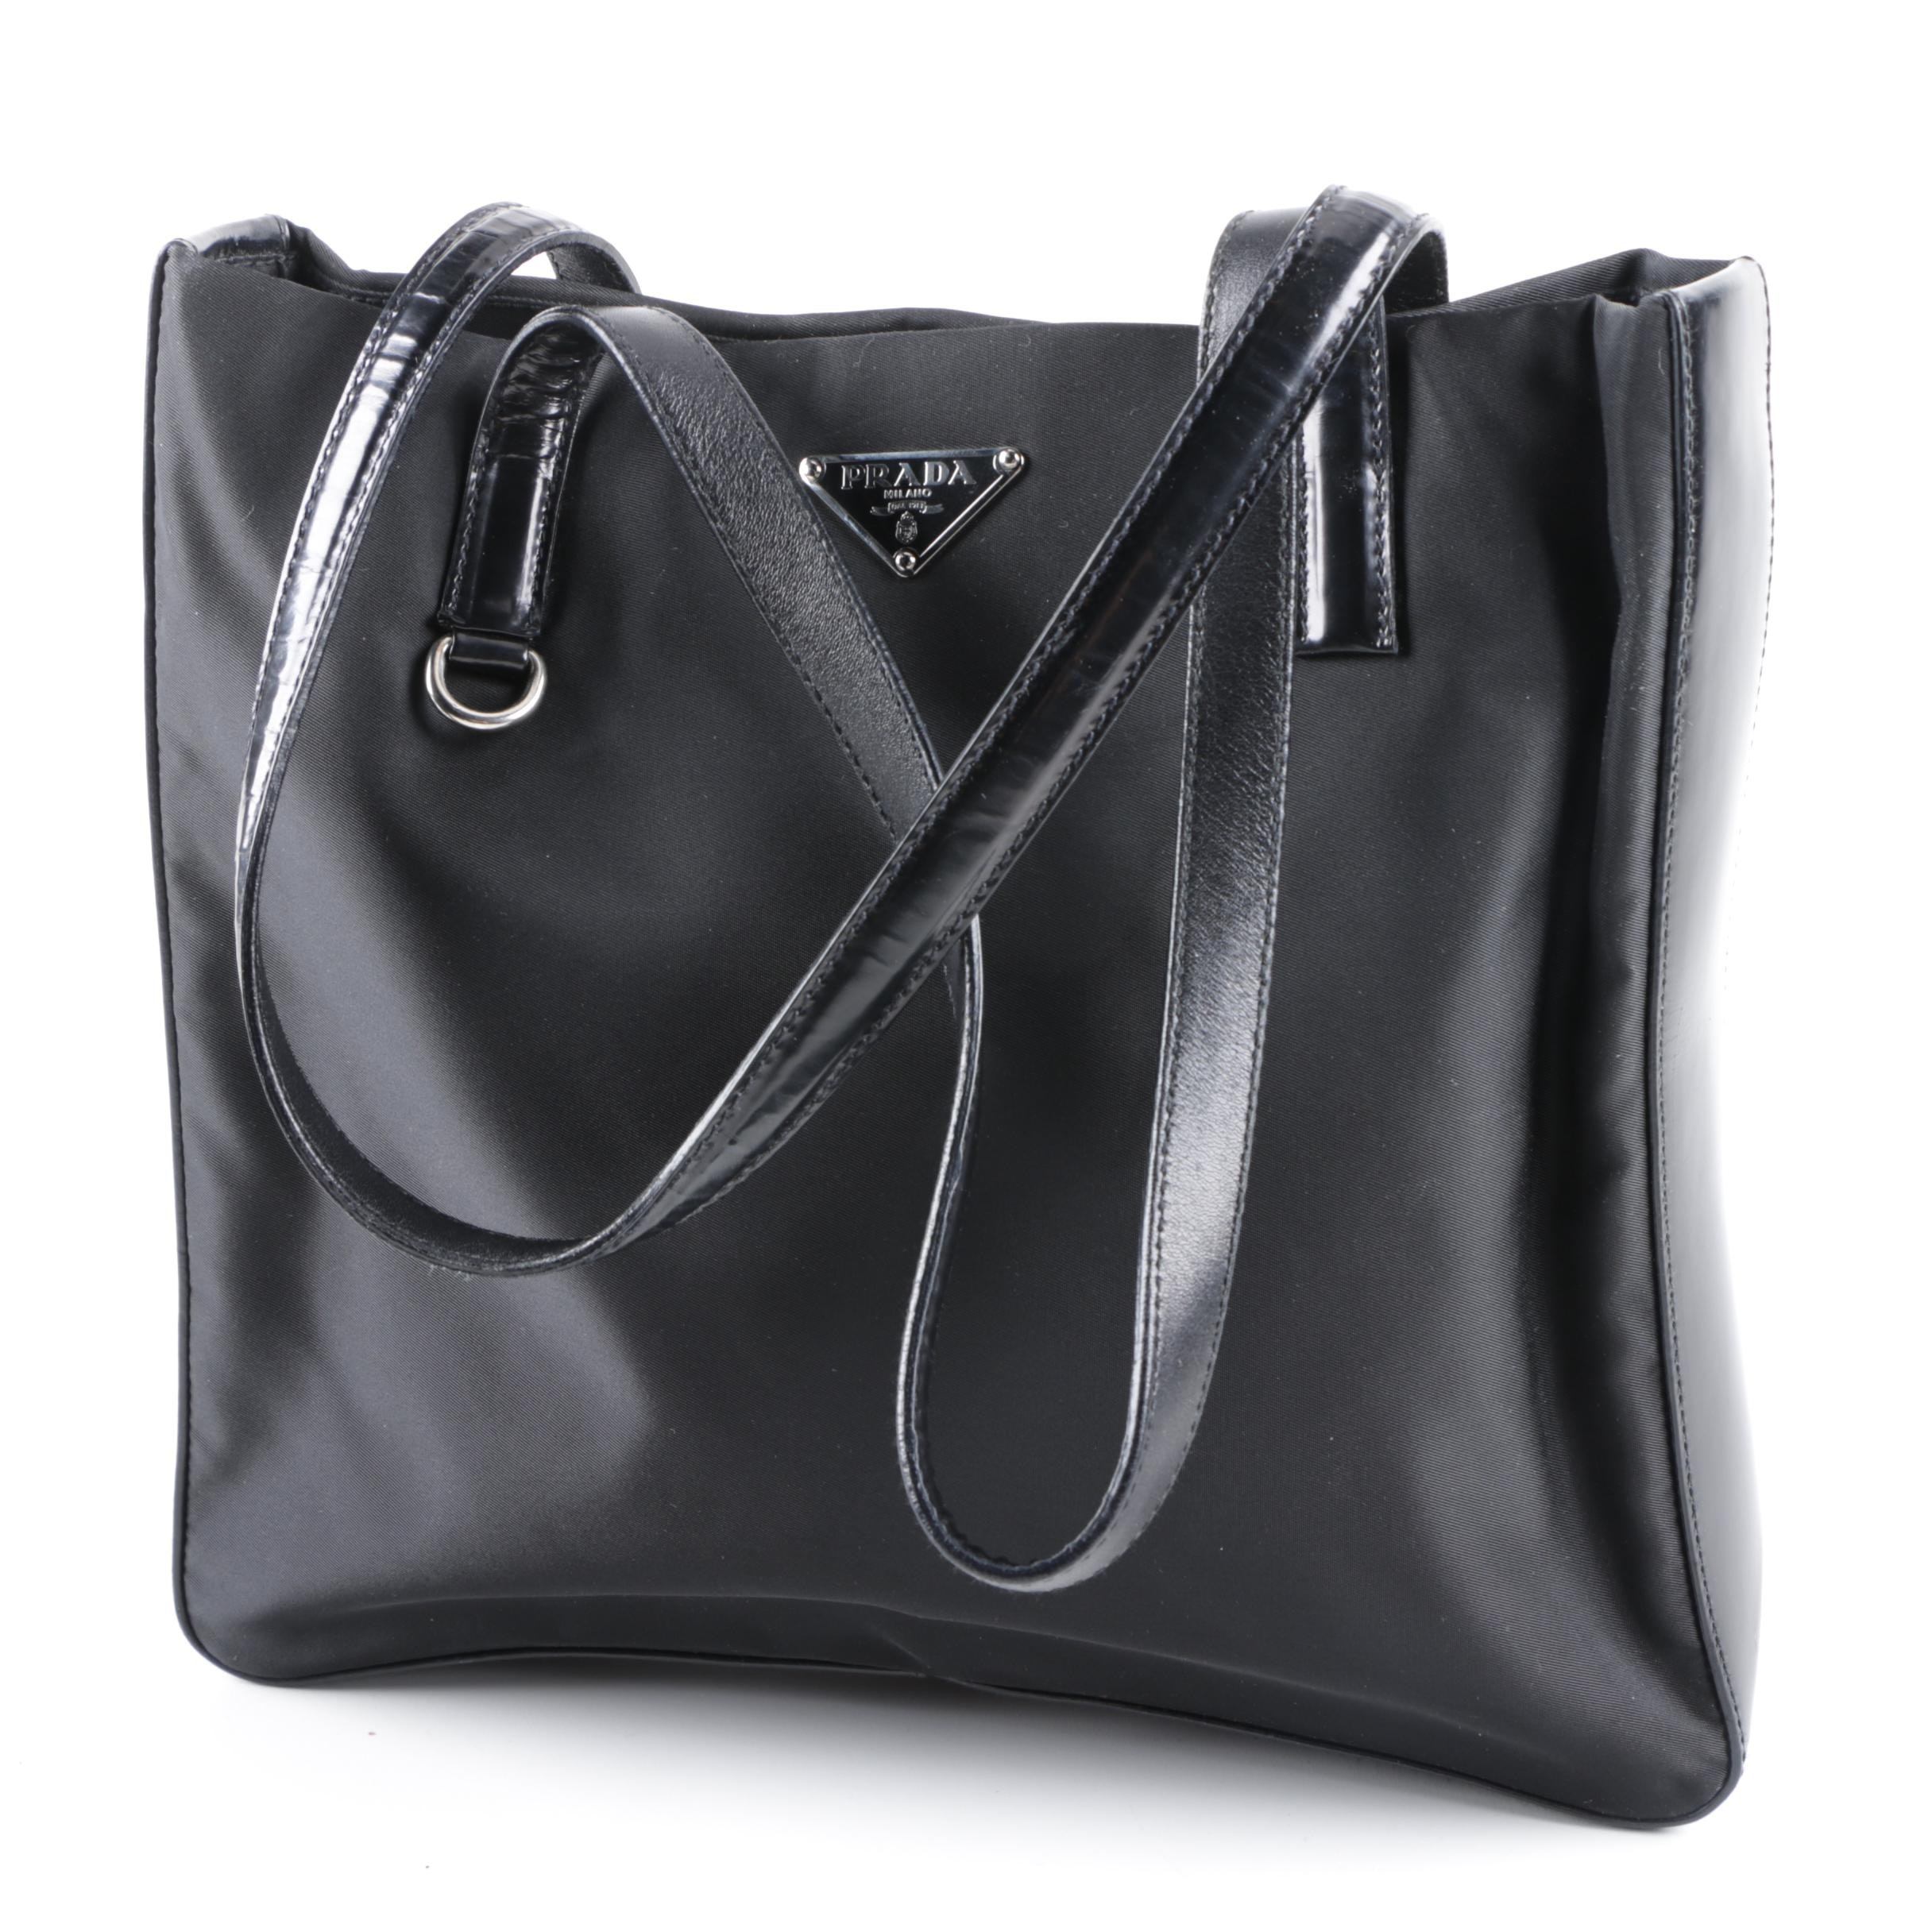 Prada Black Nylon and Leather Tote